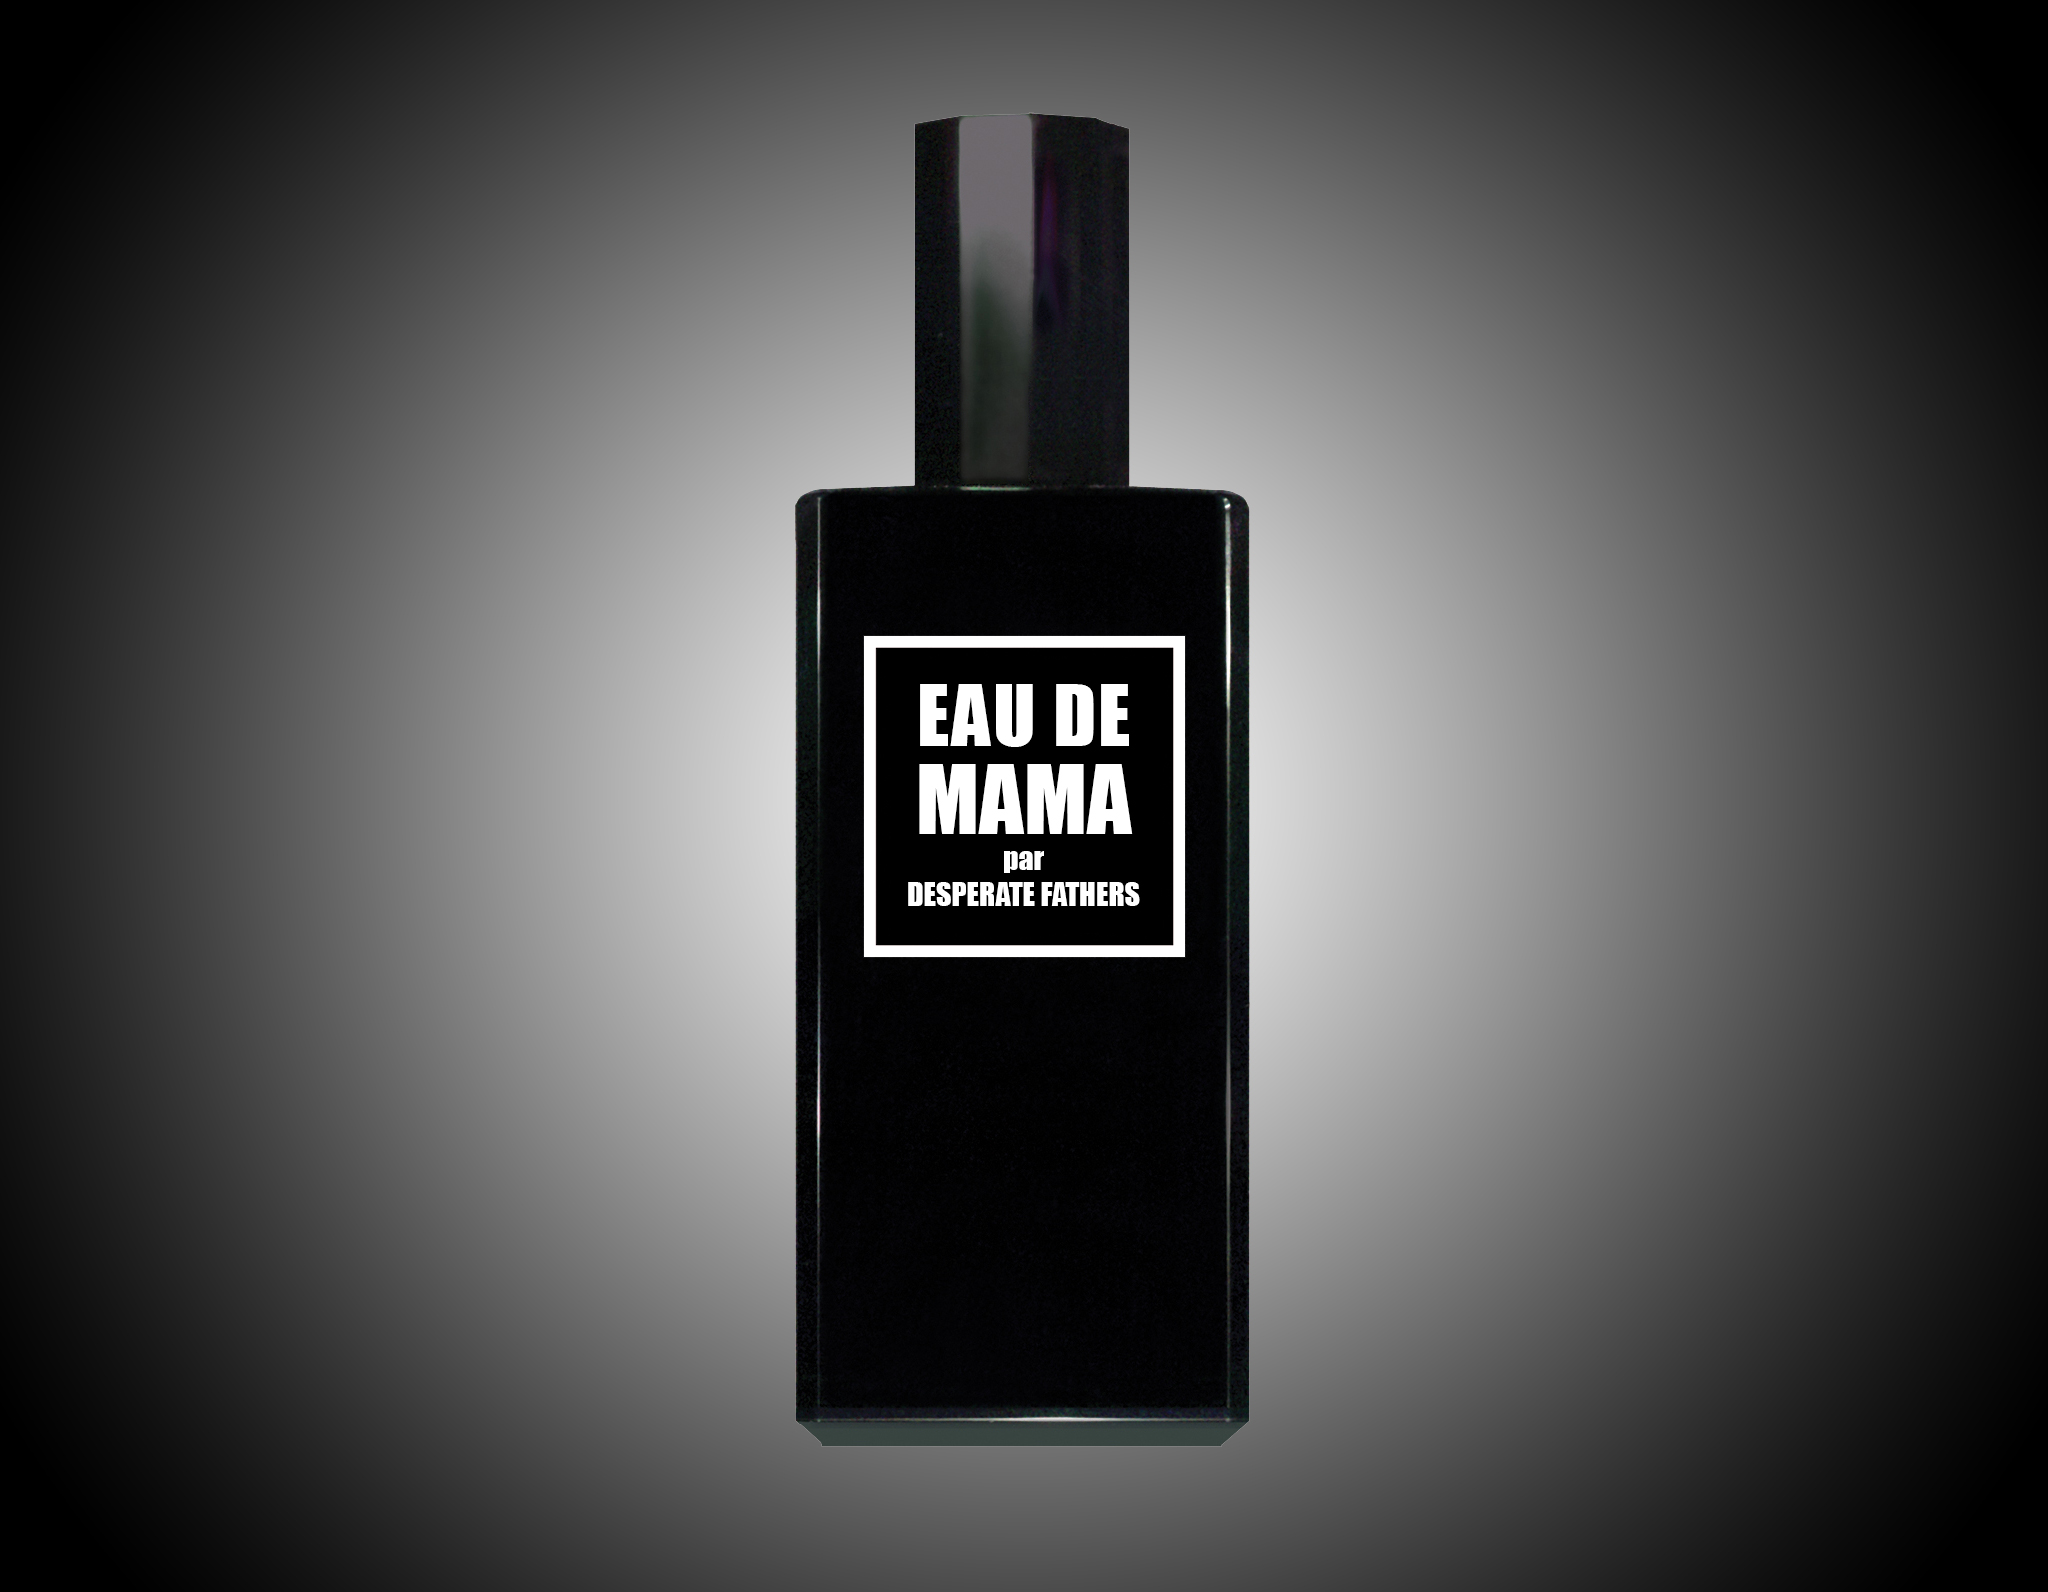 Eau de Mama - A New Fragrance